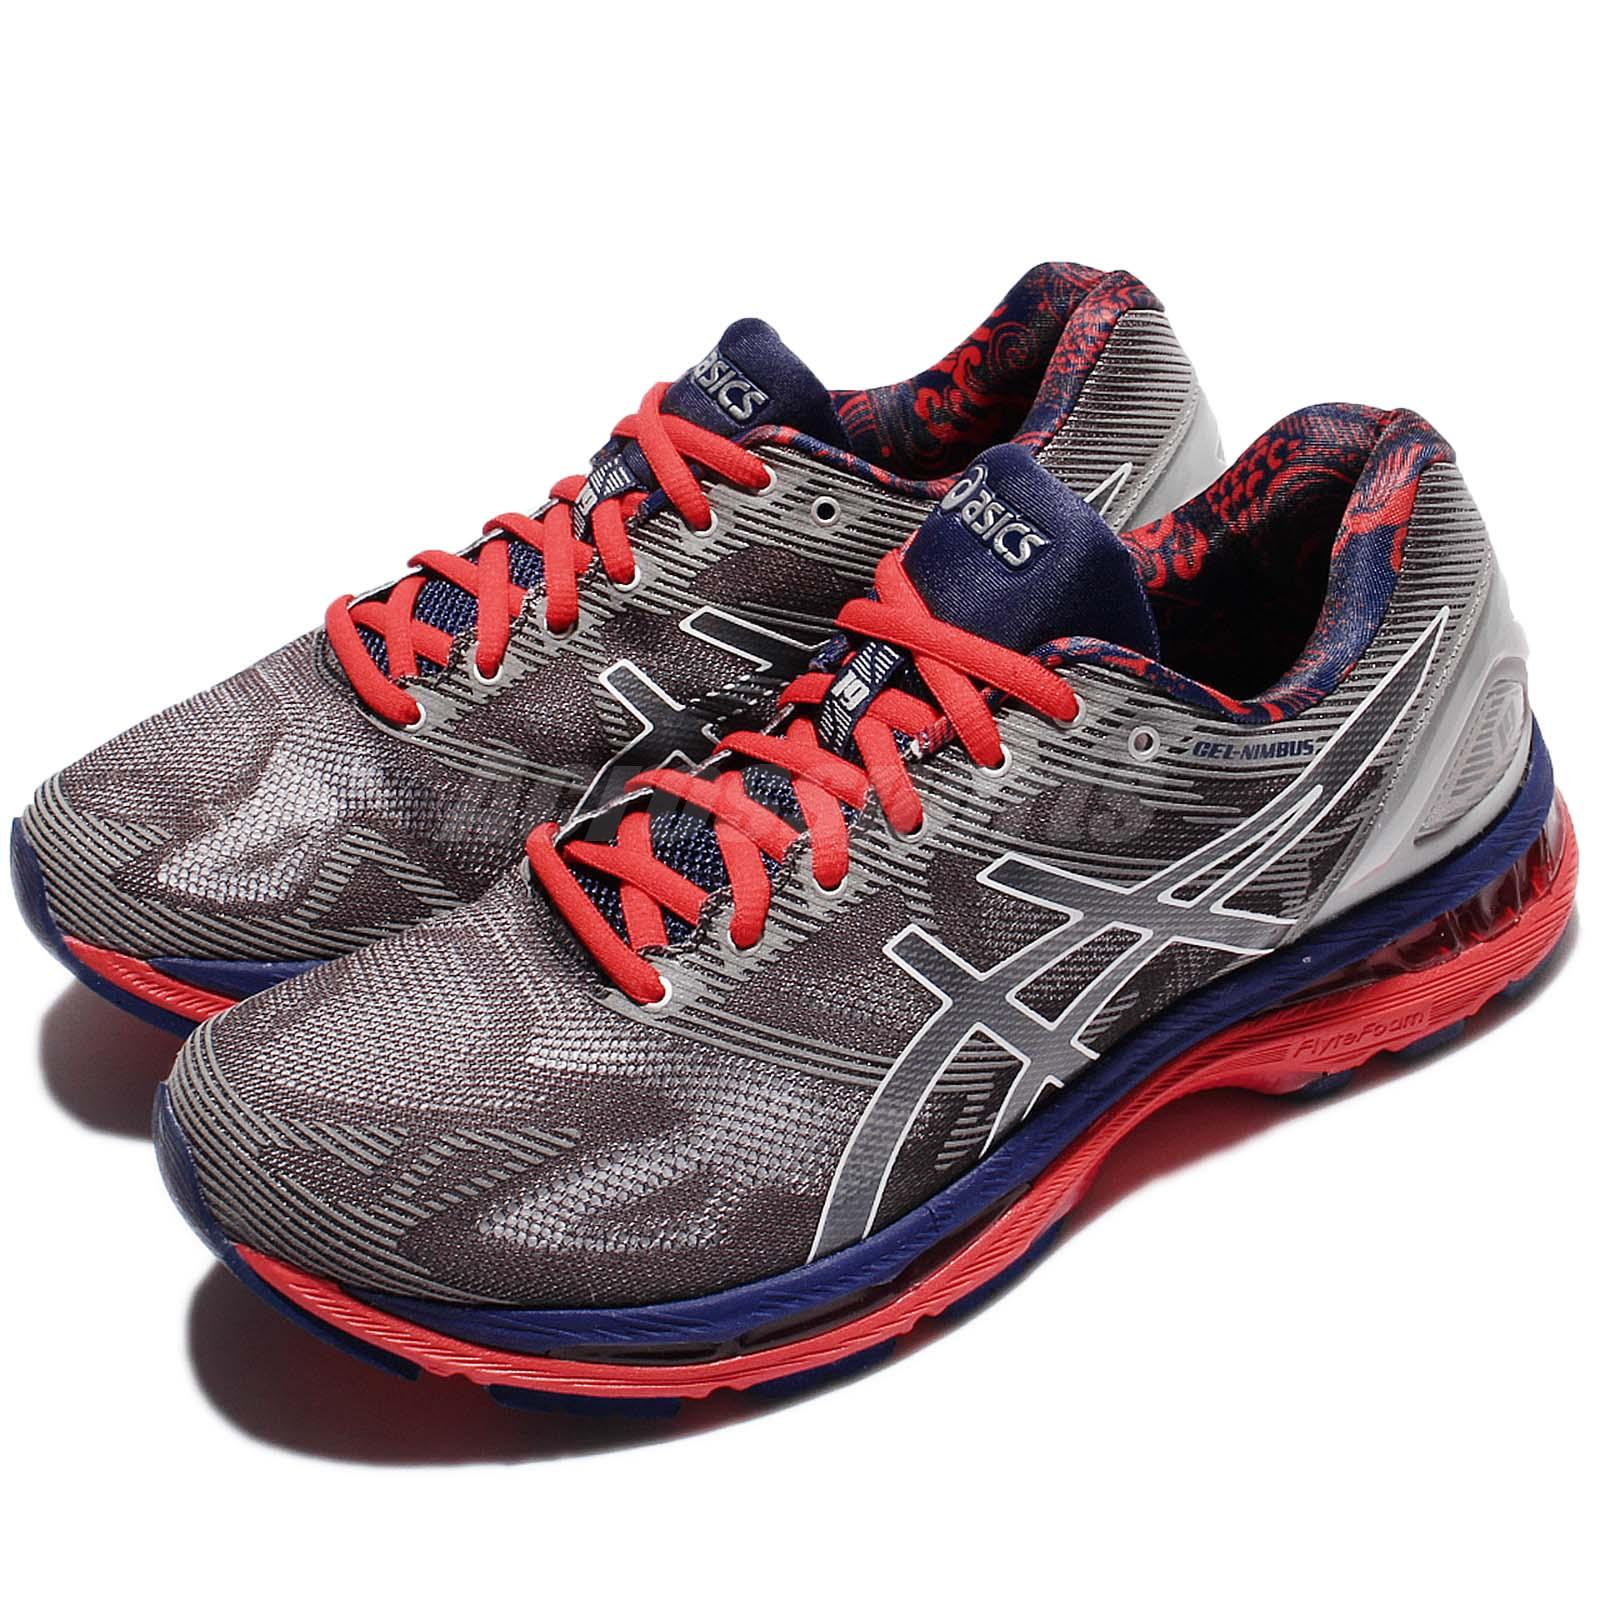 asics gel nimbus 19 lite show grey navy men running shoes sneakers t704n 9701 auctions buy and. Black Bedroom Furniture Sets. Home Design Ideas